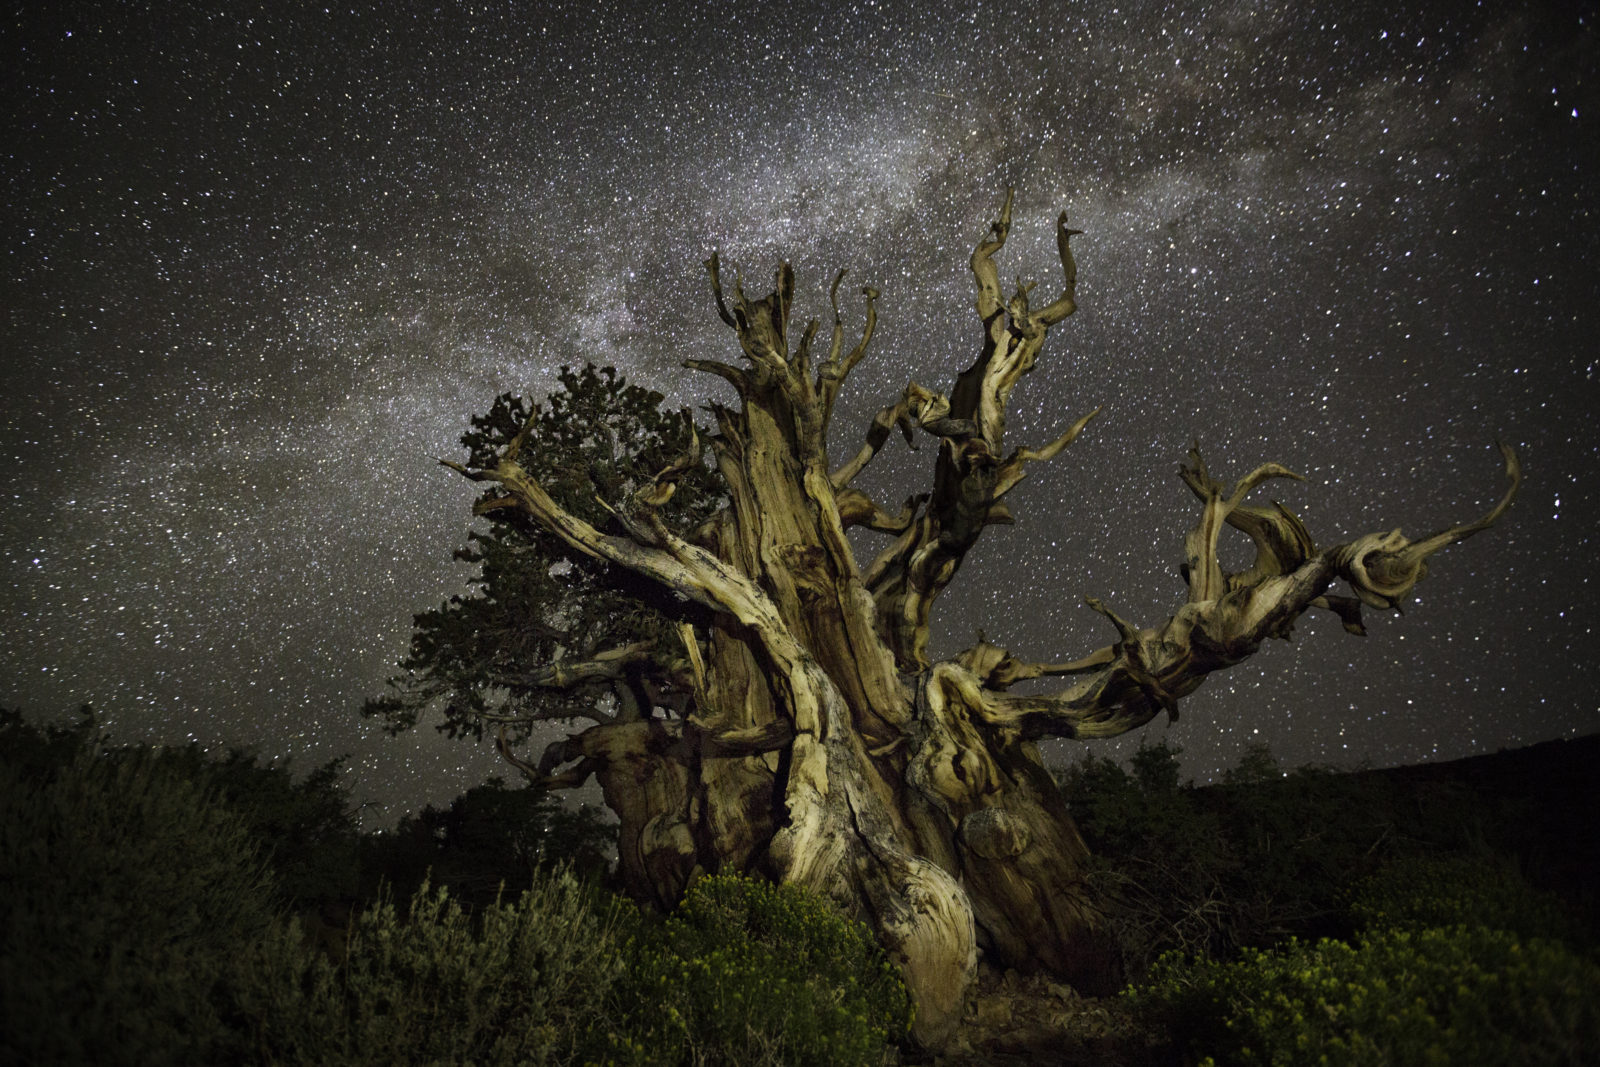 Beth Moon: Diamond Nights, California -